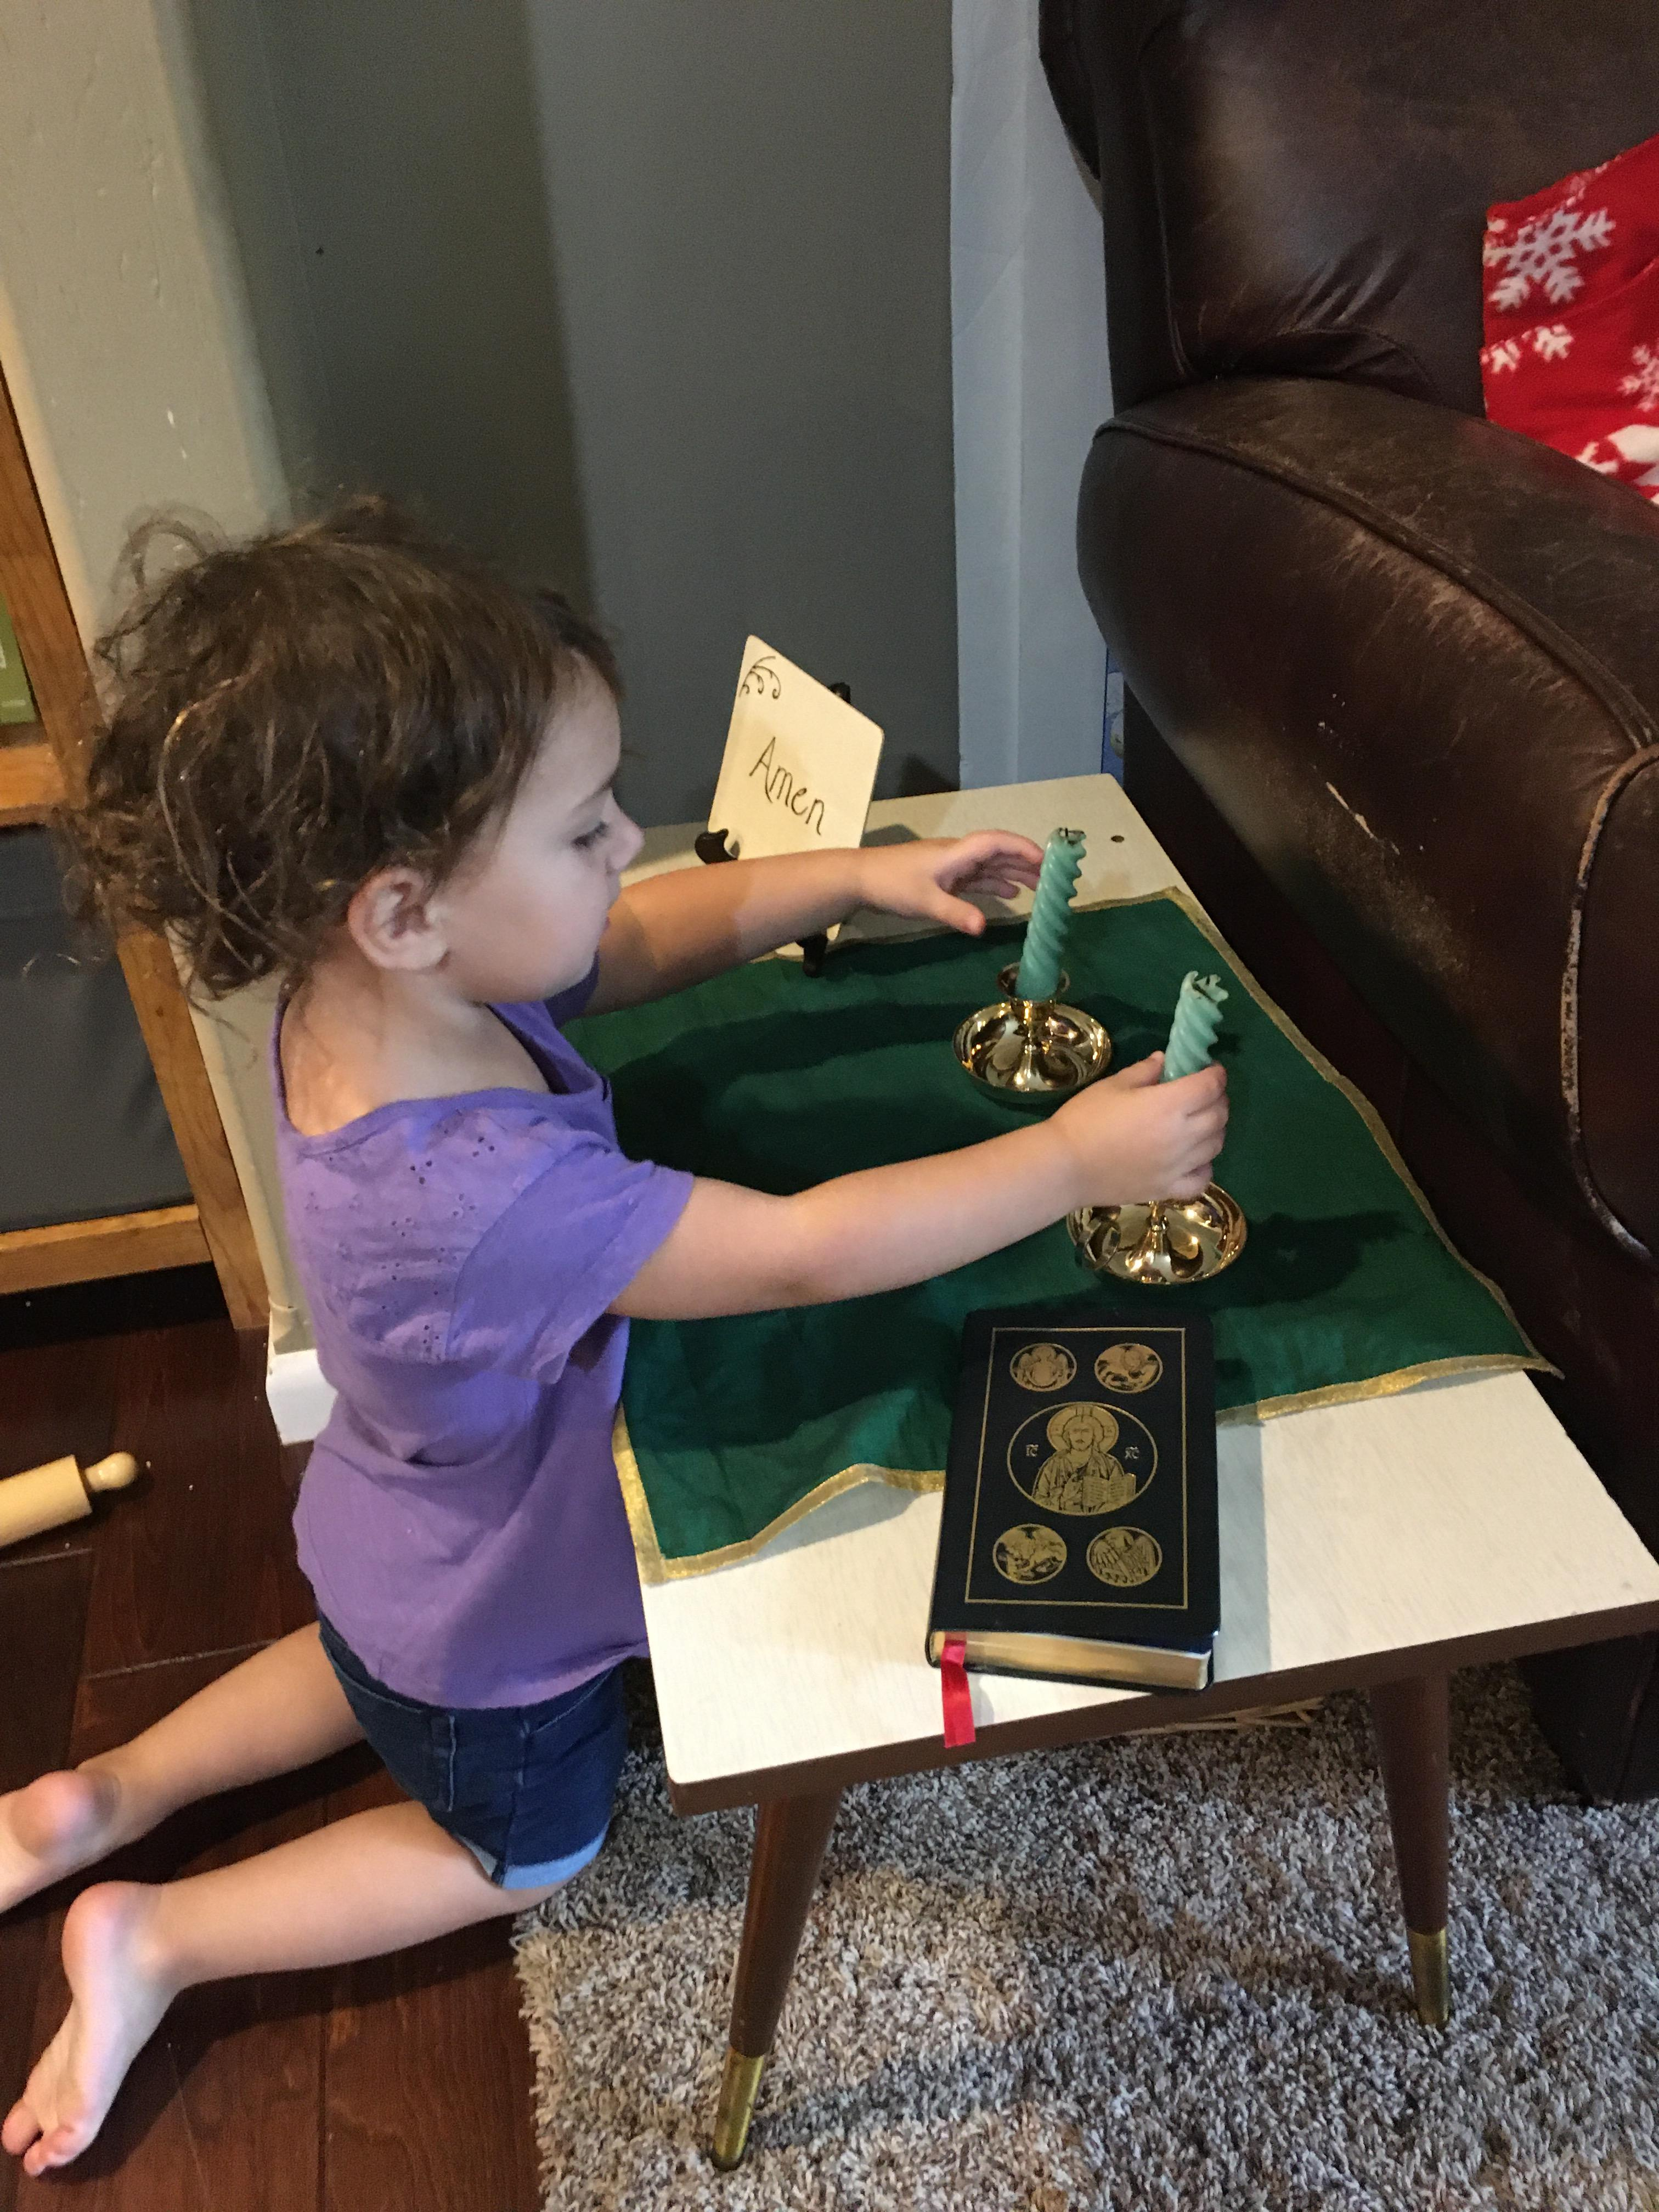 toddler reaching for candles at prayer table